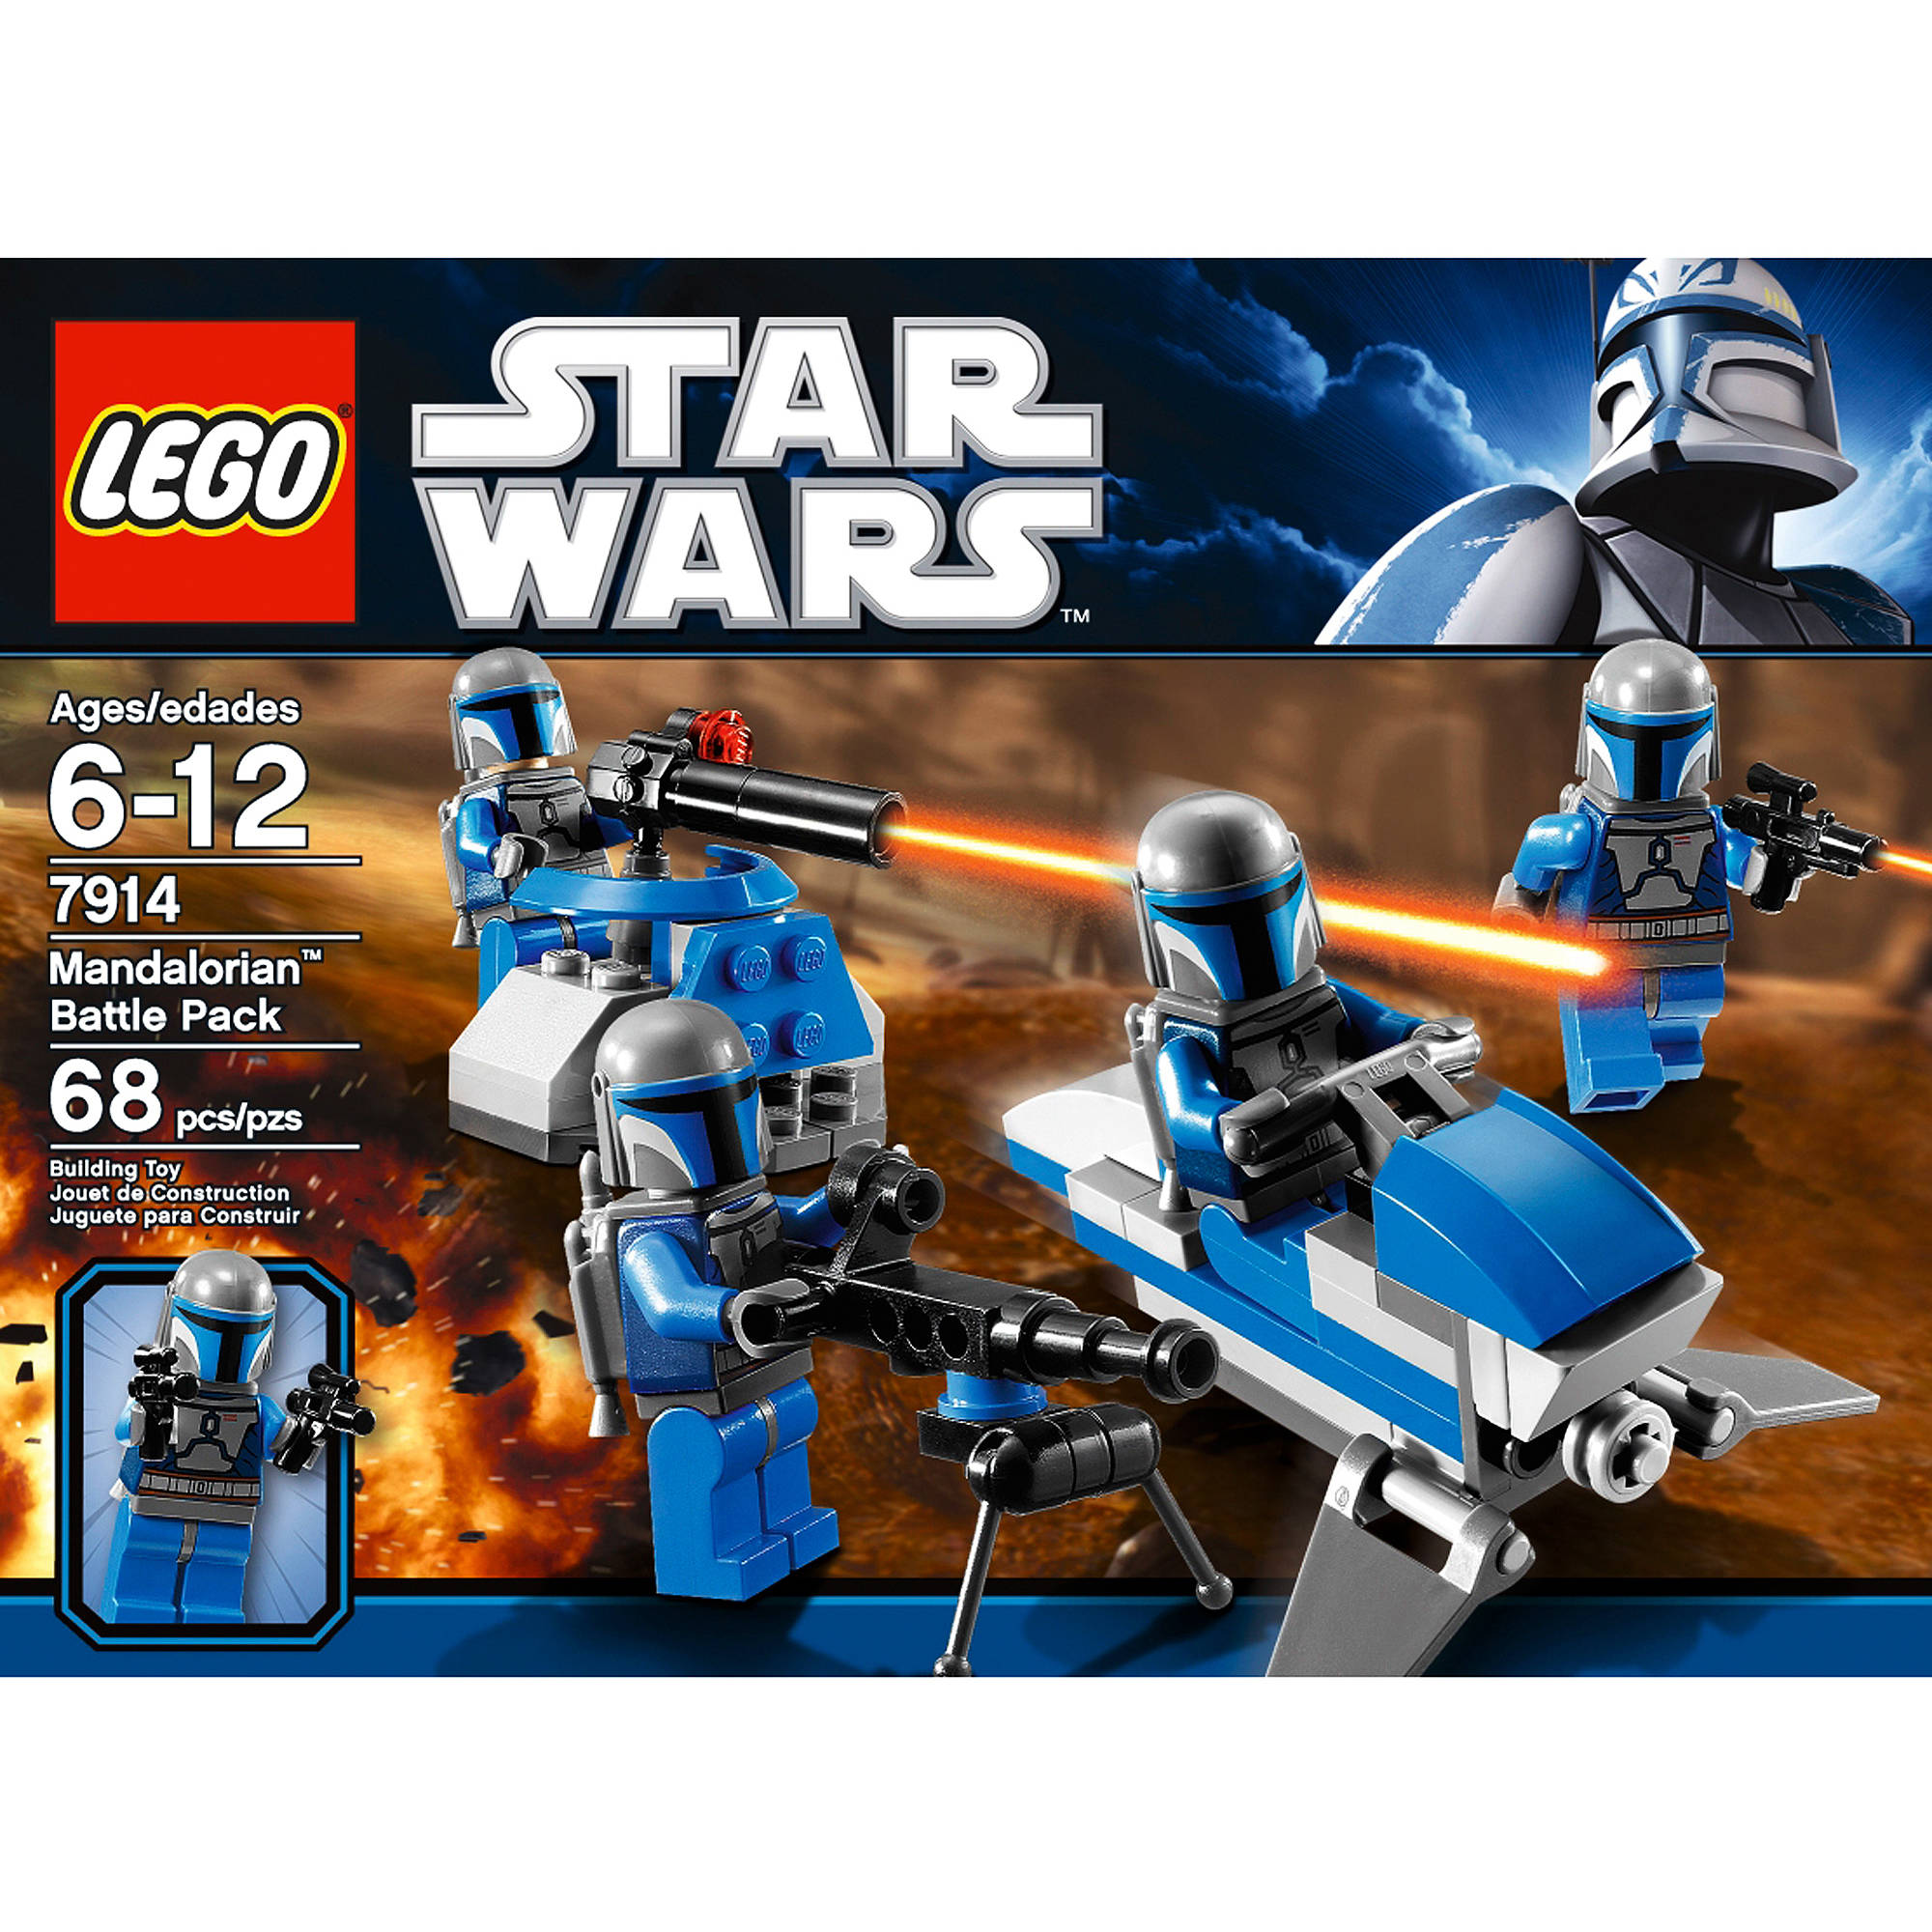 LEGO Star Wars, Mandalorian Battle Pack